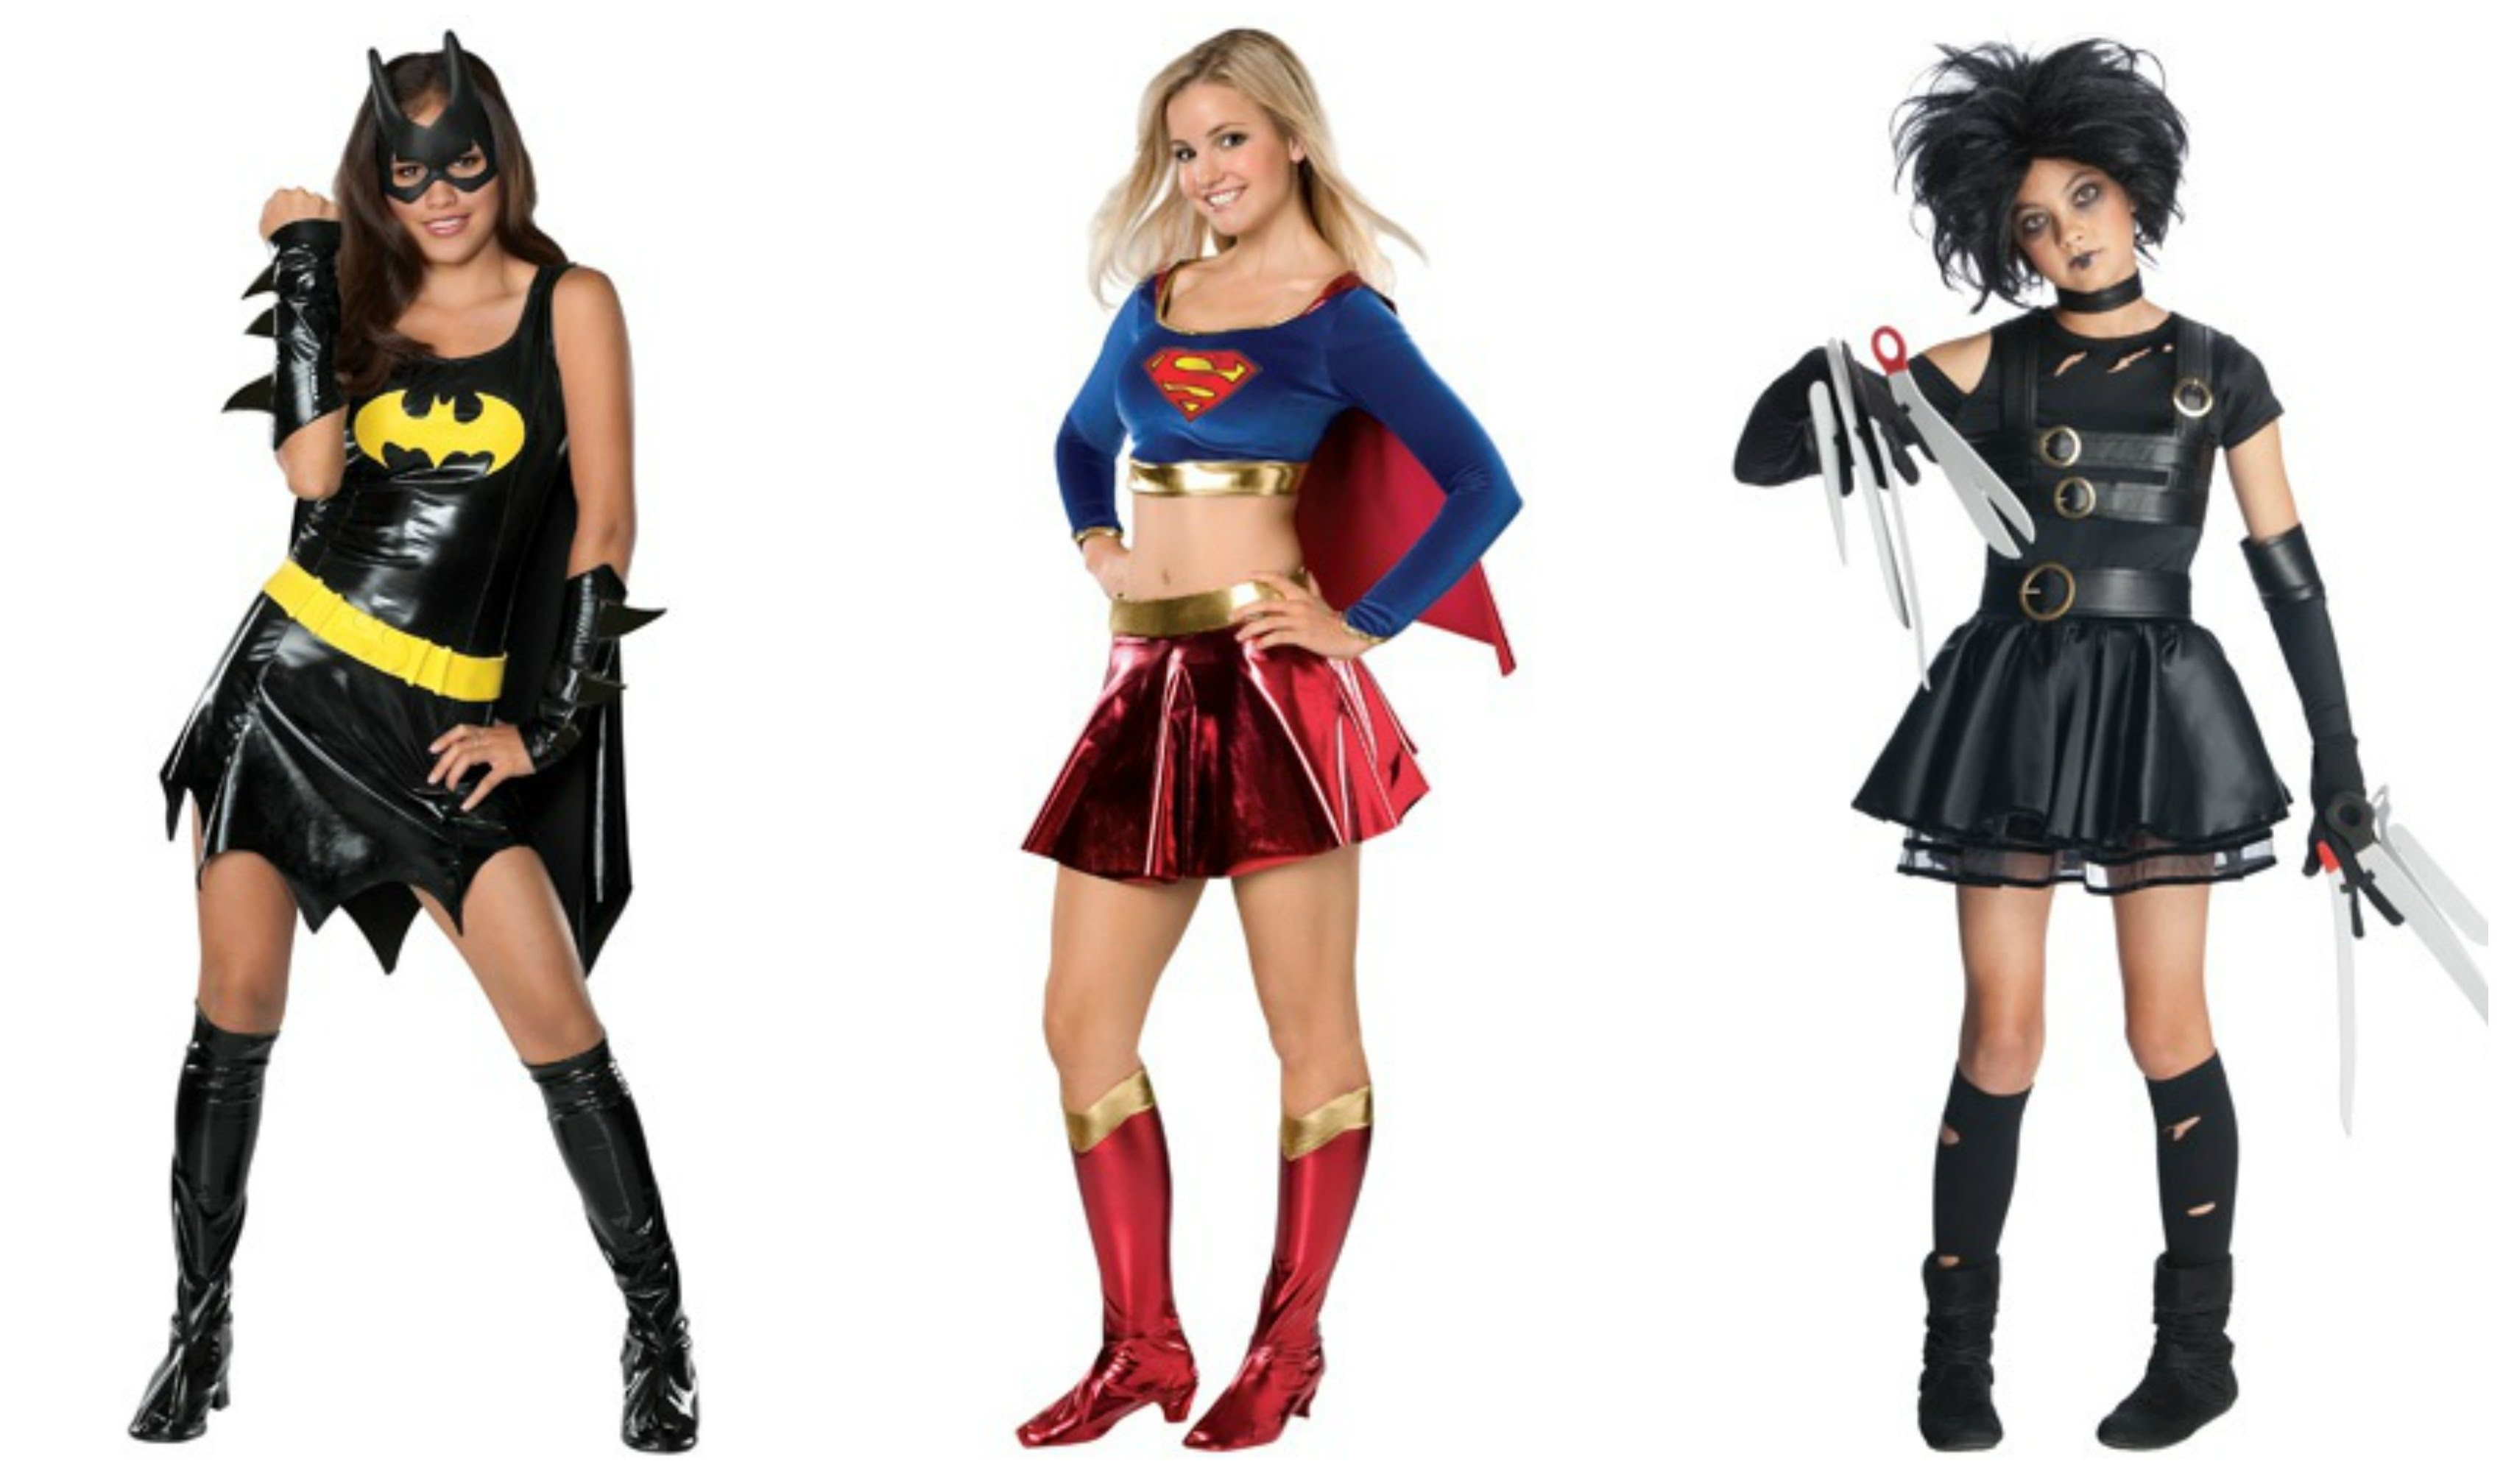 halloween costume ideas for teens girls youtube, halloween costumes